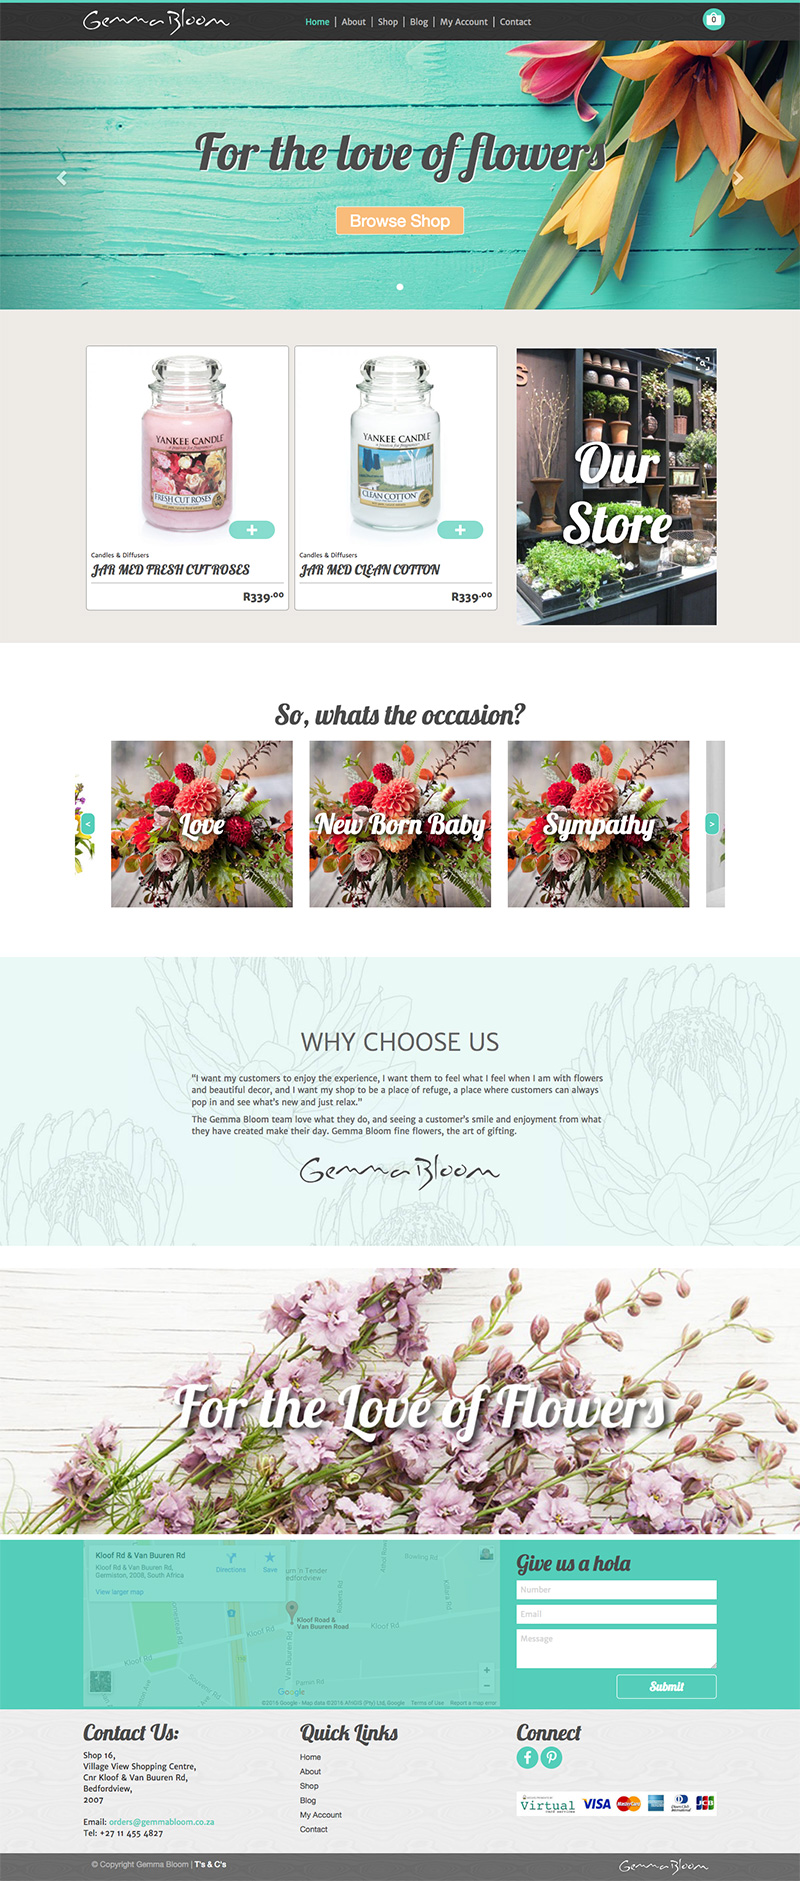 Gemma Bloom Website Design